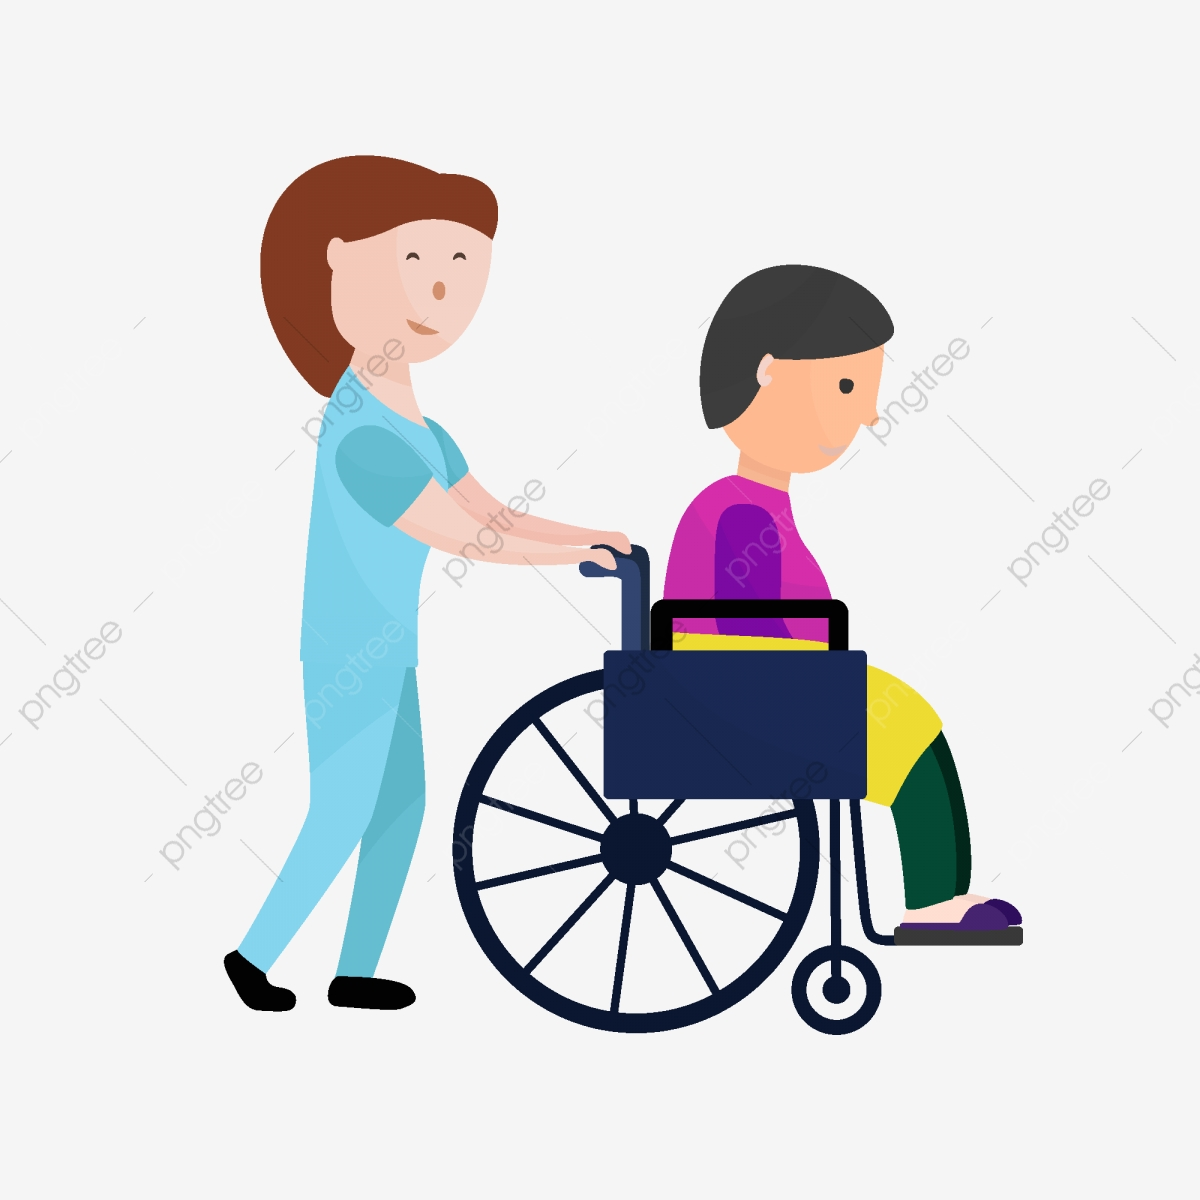 Cartoon Nursing Home Care Worker Pushing Old Man Element Old Man Wheelchair Care Workers Png Transparent Image And Clipart For Free Download